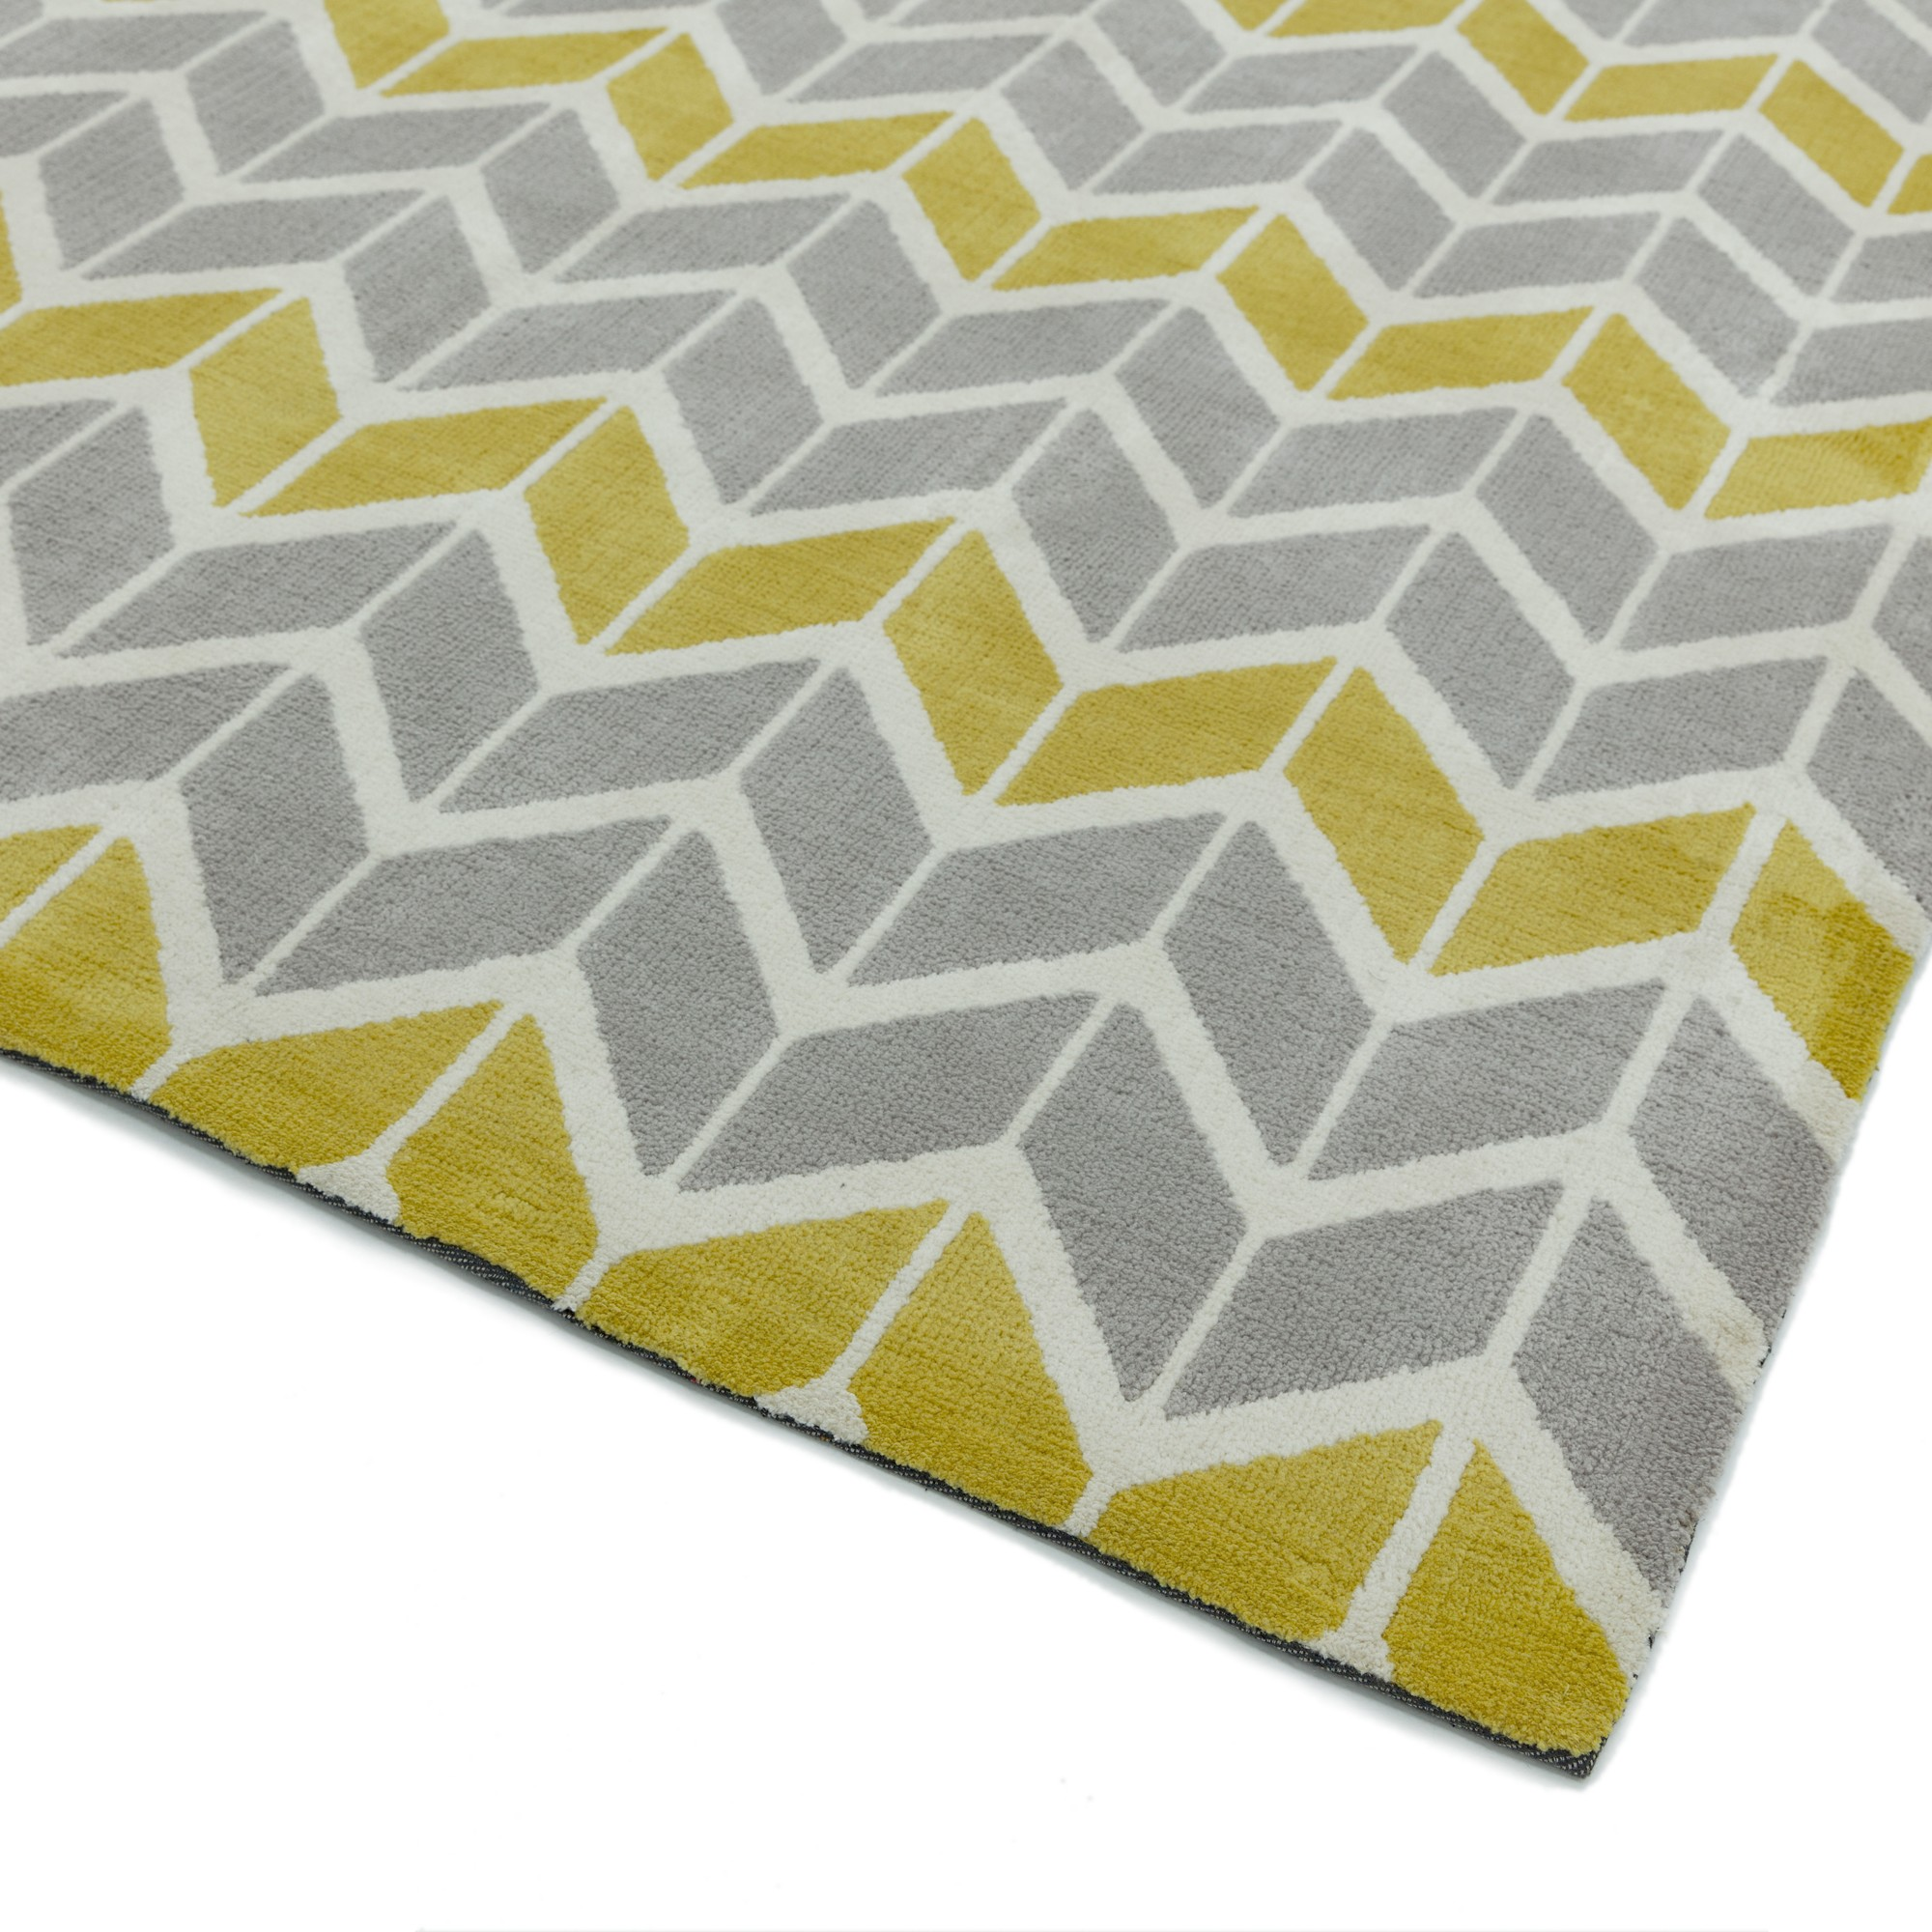 ... Lemon Kitchen Rug. Click To View Other Images: